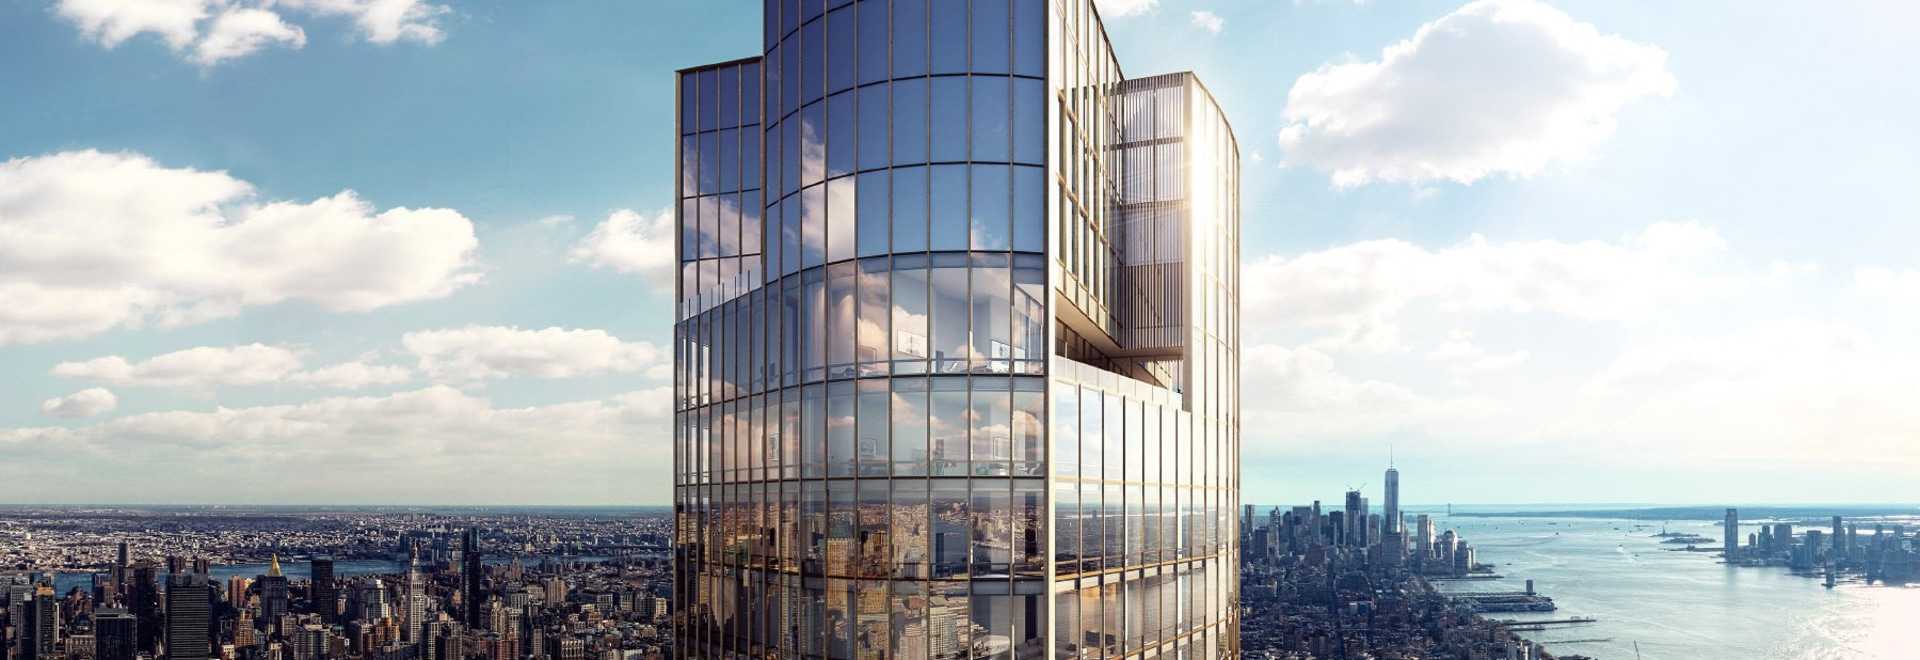 35 hudson yards: explore plans for the NYC development's tallest residential tower